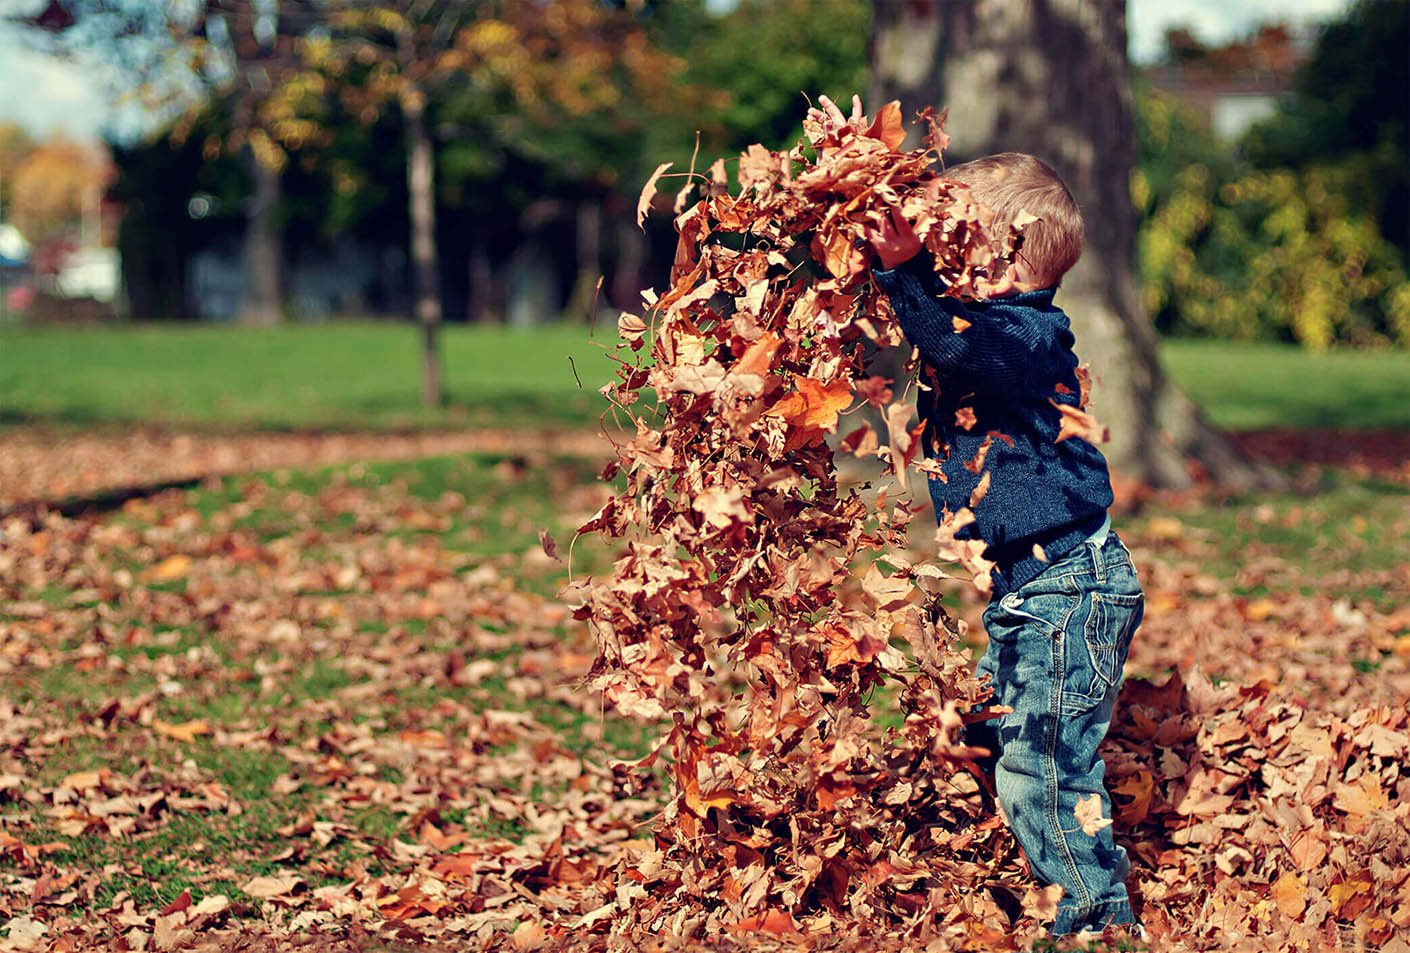 Child playing in a pile of leaves